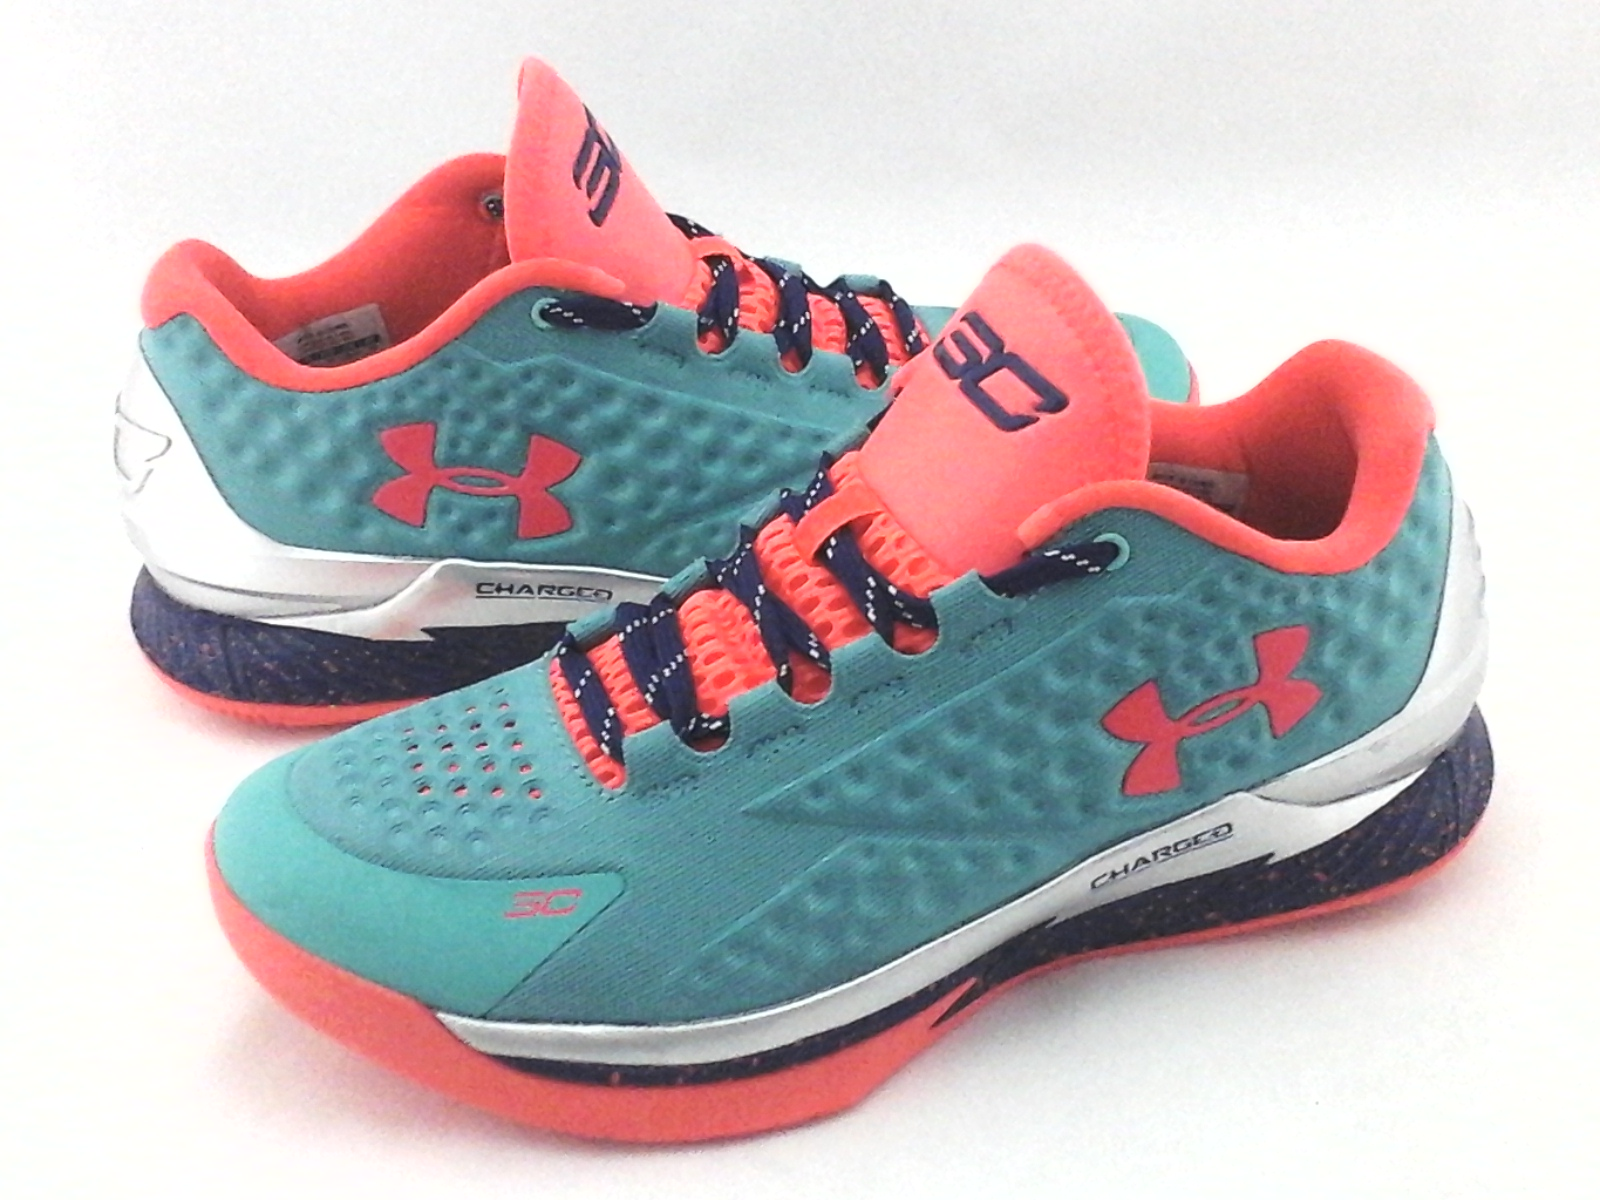 926a4a98e63544 Details about UNDER ARMOUR SC Sneakers Stephen Curry Green Multi 1276195  Shoes Mens US 8.5 42